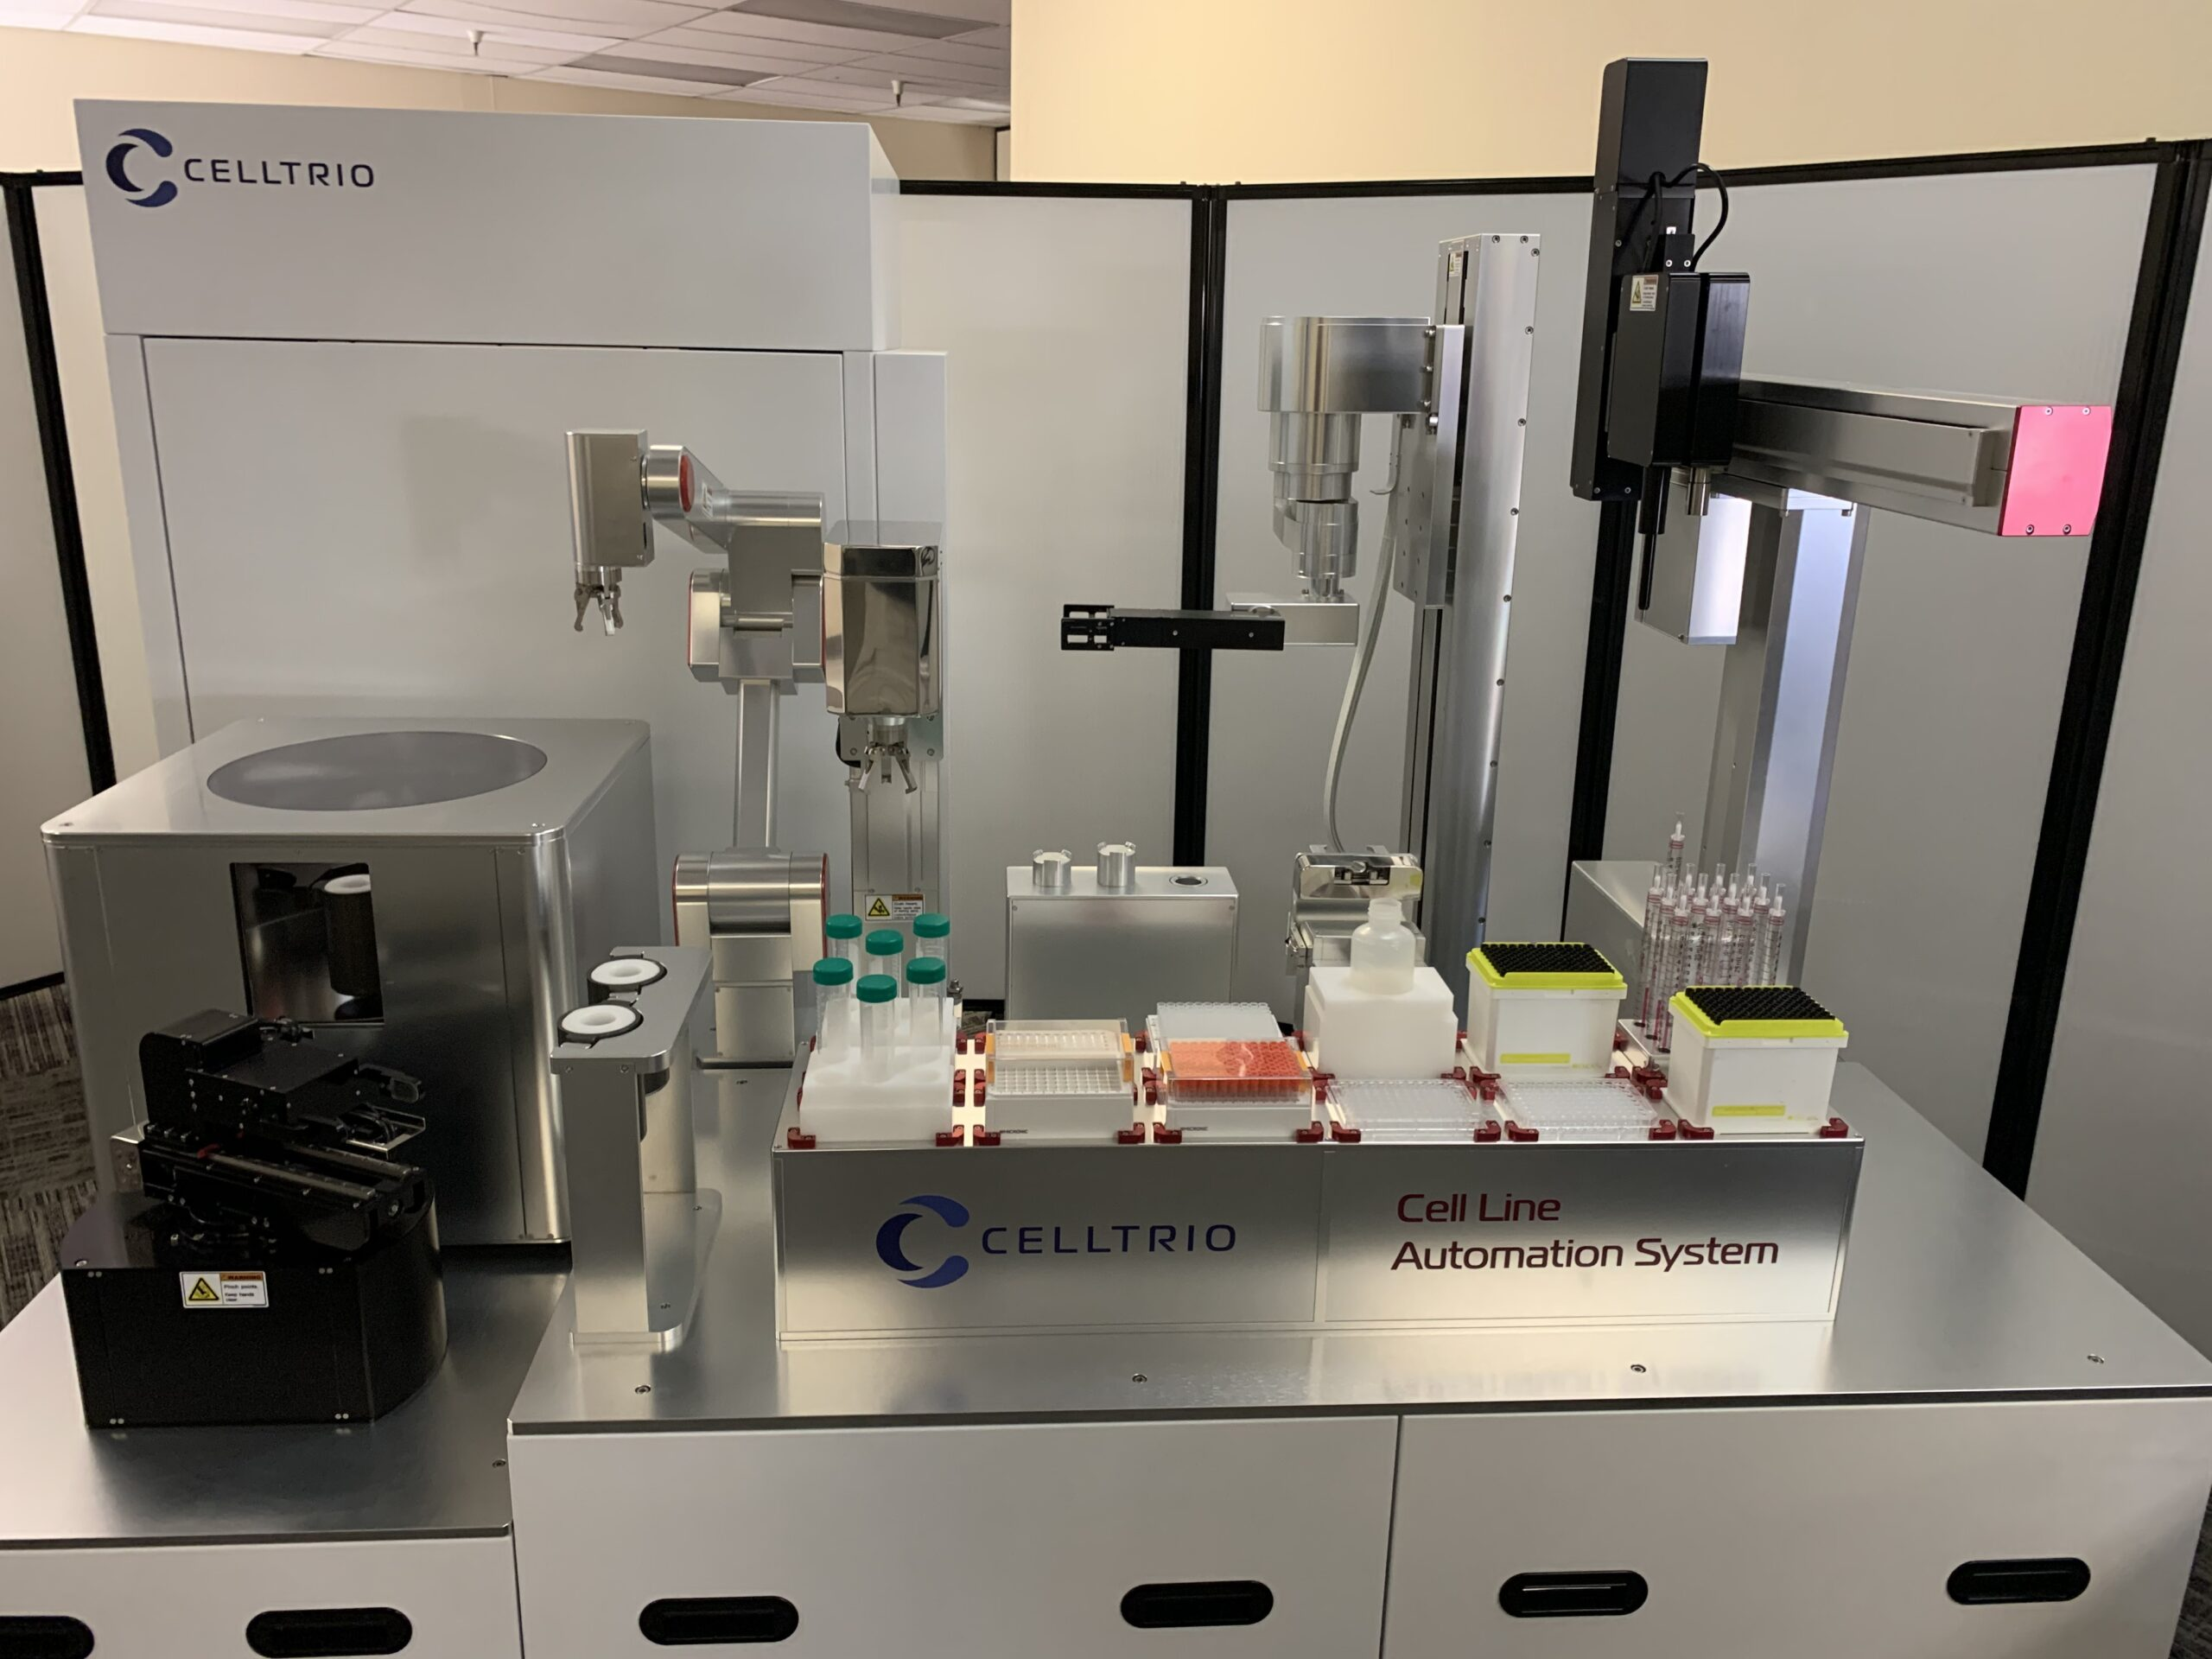 Celltrio is utilizing the design theory popularized in LEGO building sets to automate manual lab processes, such as raw cell division and harvesting cultured cells, for its growing customer base of pharmaceutical developers, universities, hospitals, and government and independent labs.